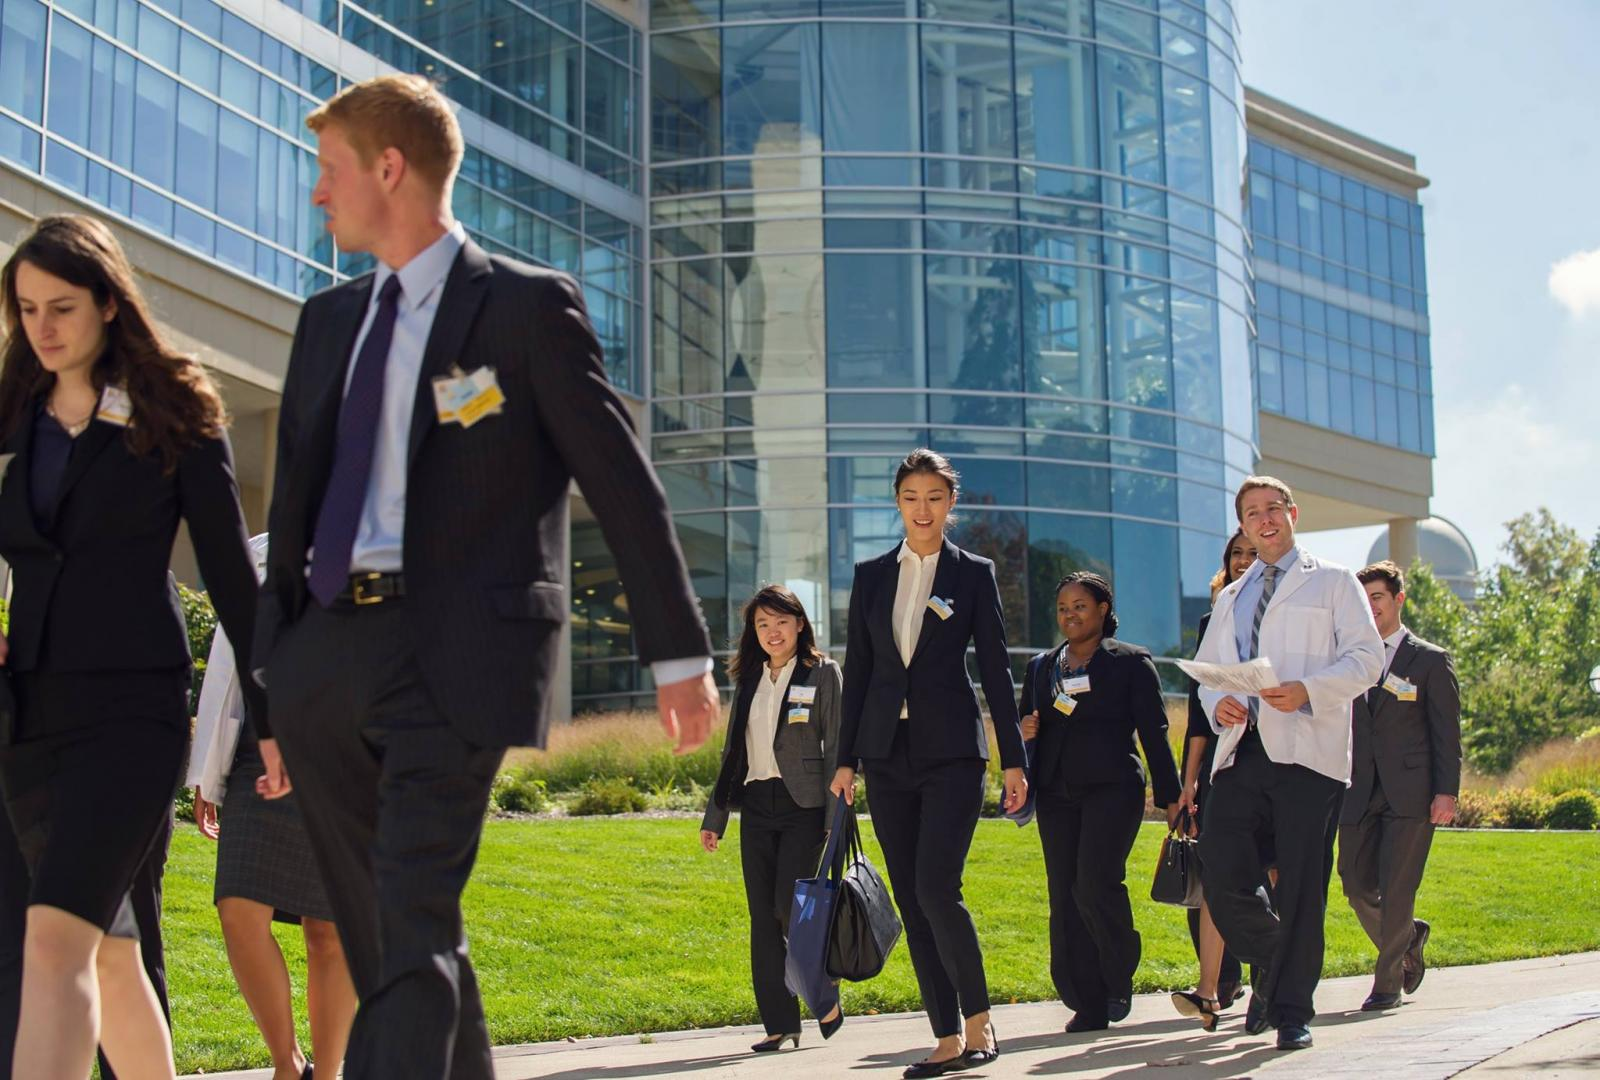 Visiting students walk past the Cardiovascular Center